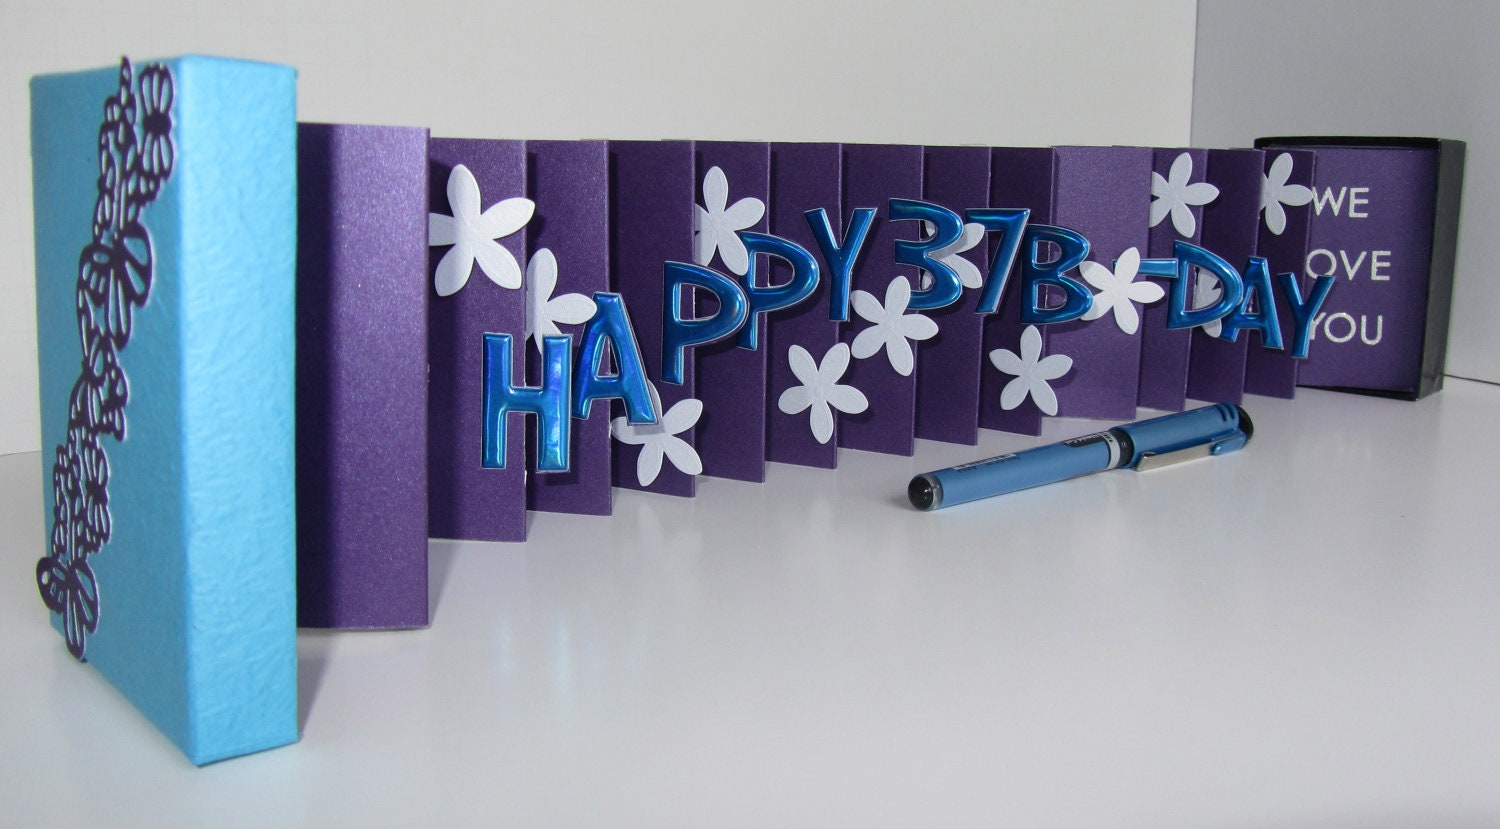 Happy 37th birthday wishes pop up accordion book card in a zoom m4hsunfo